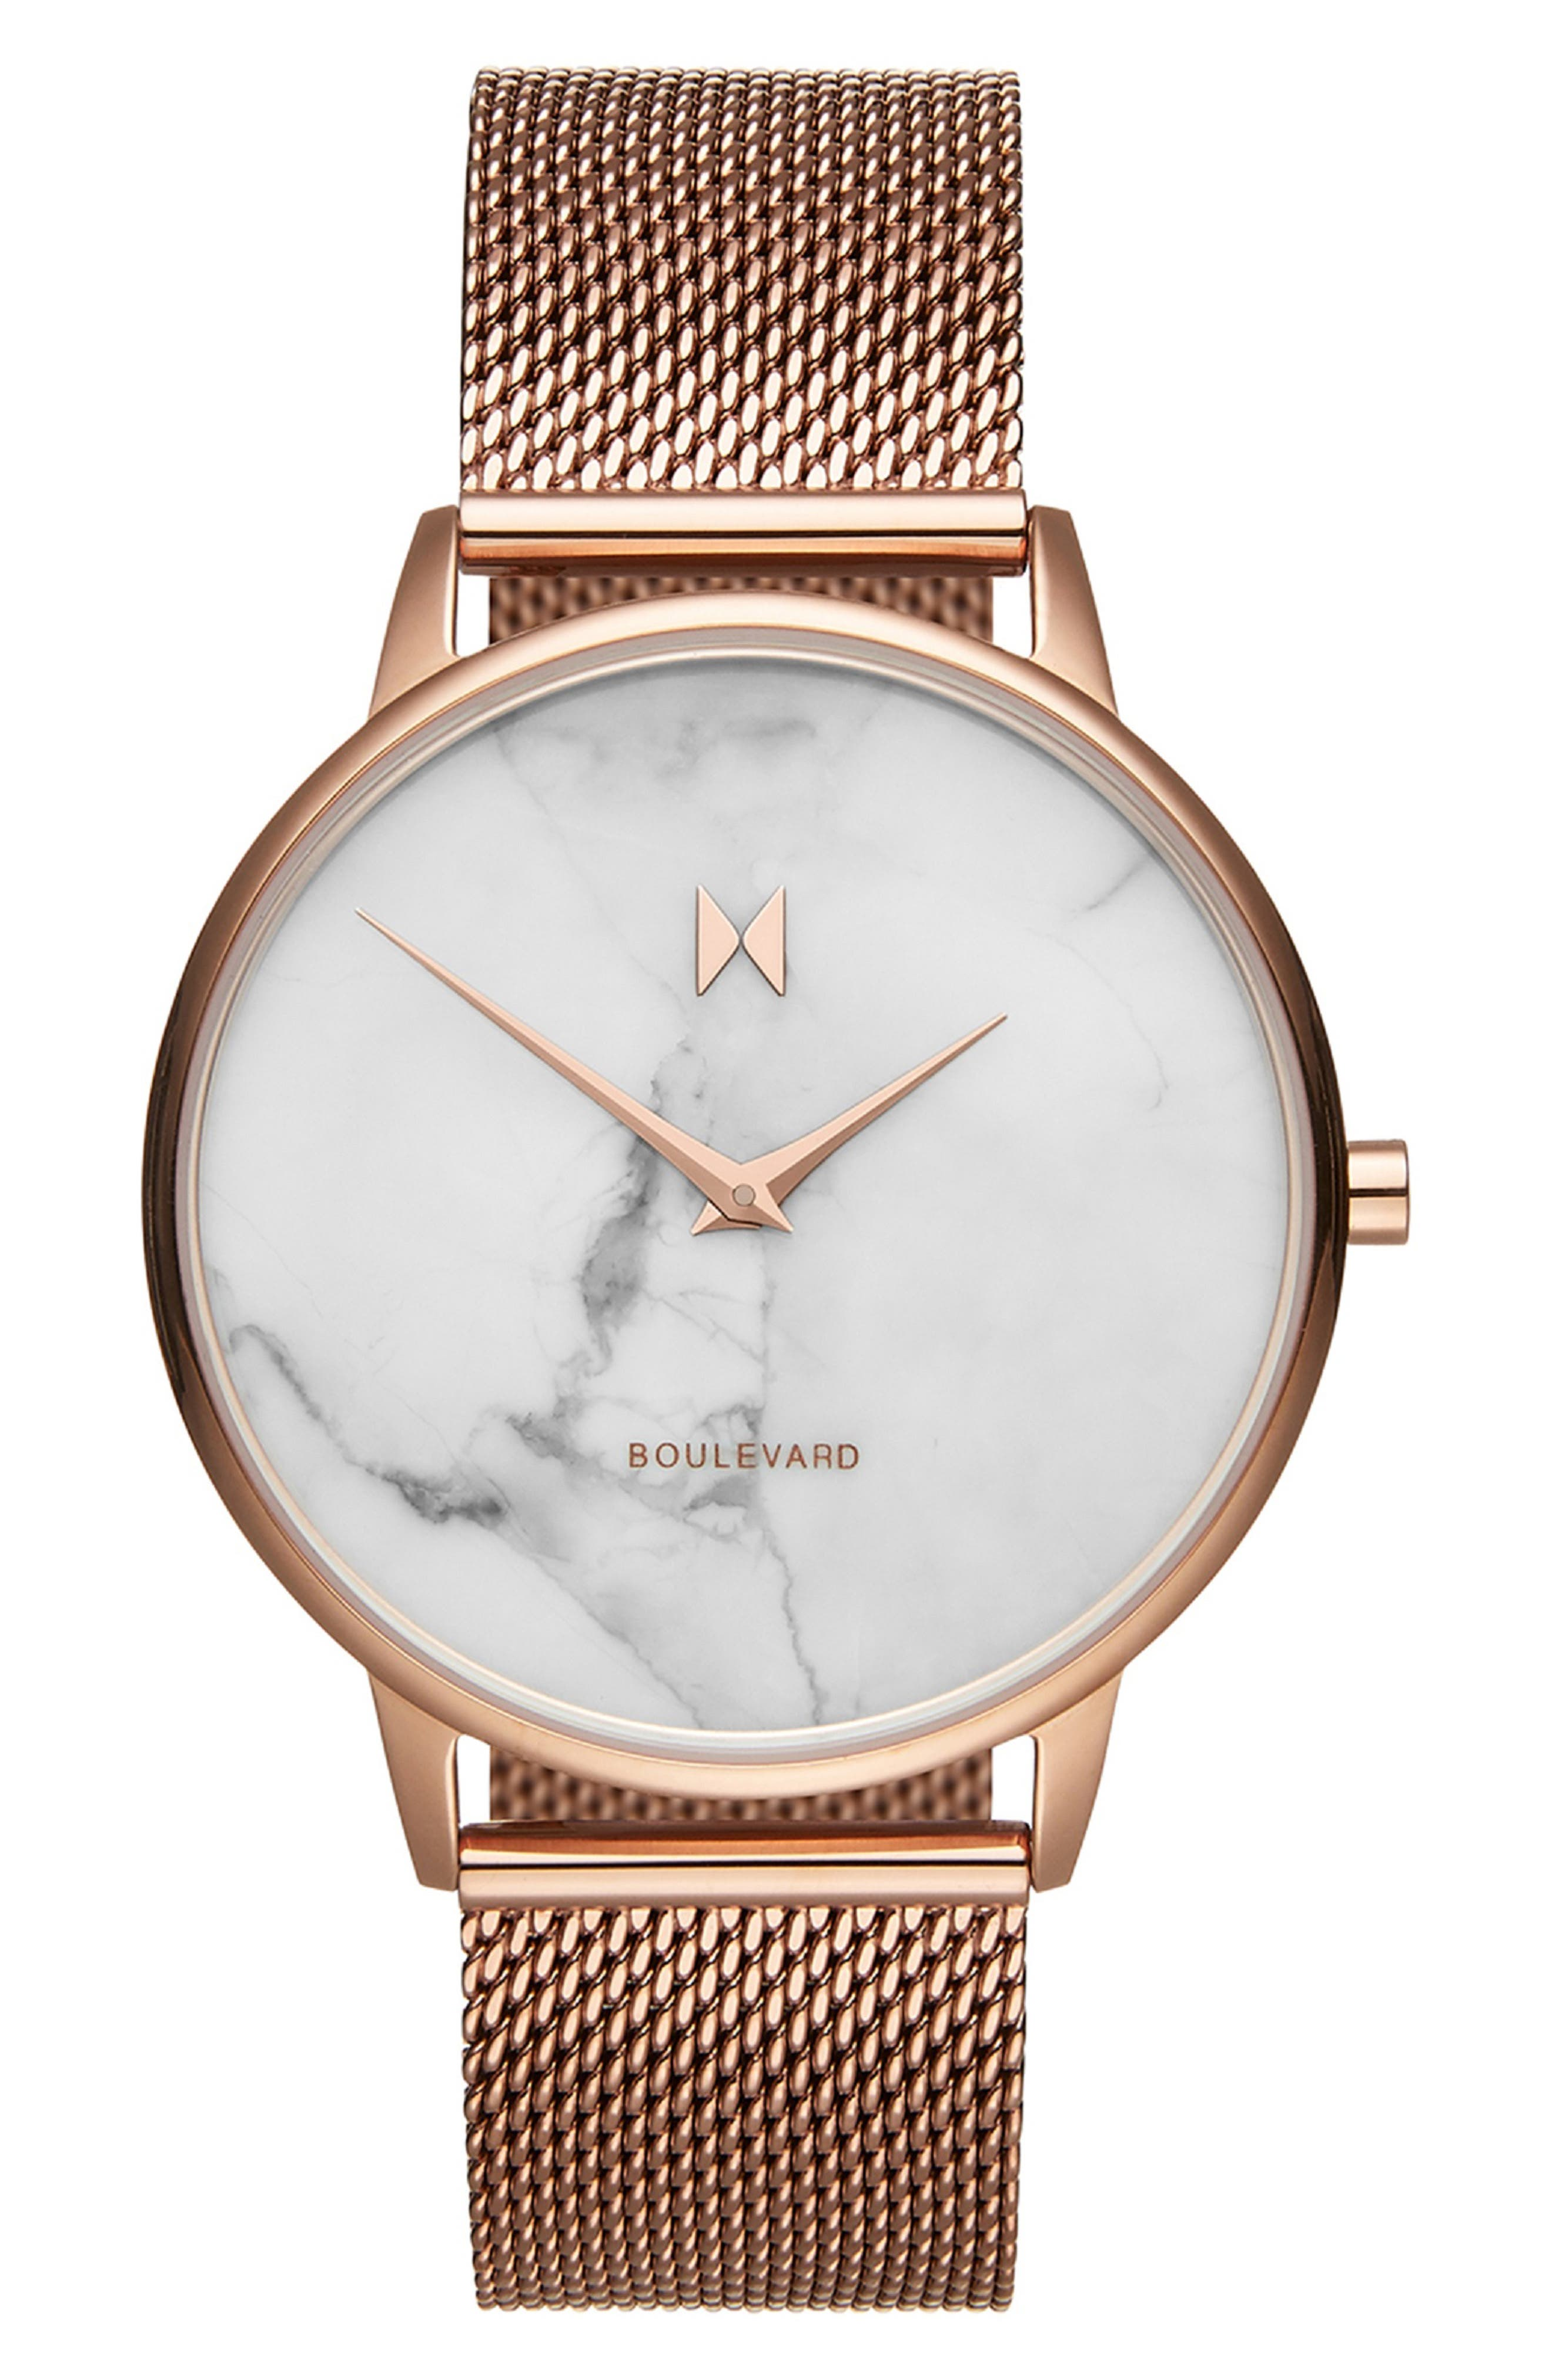 Boulevard Mesh Strap Watch, 38mm,                         Main,                         color, ROSE GOLD/ WHITE/ ROSE GOLD